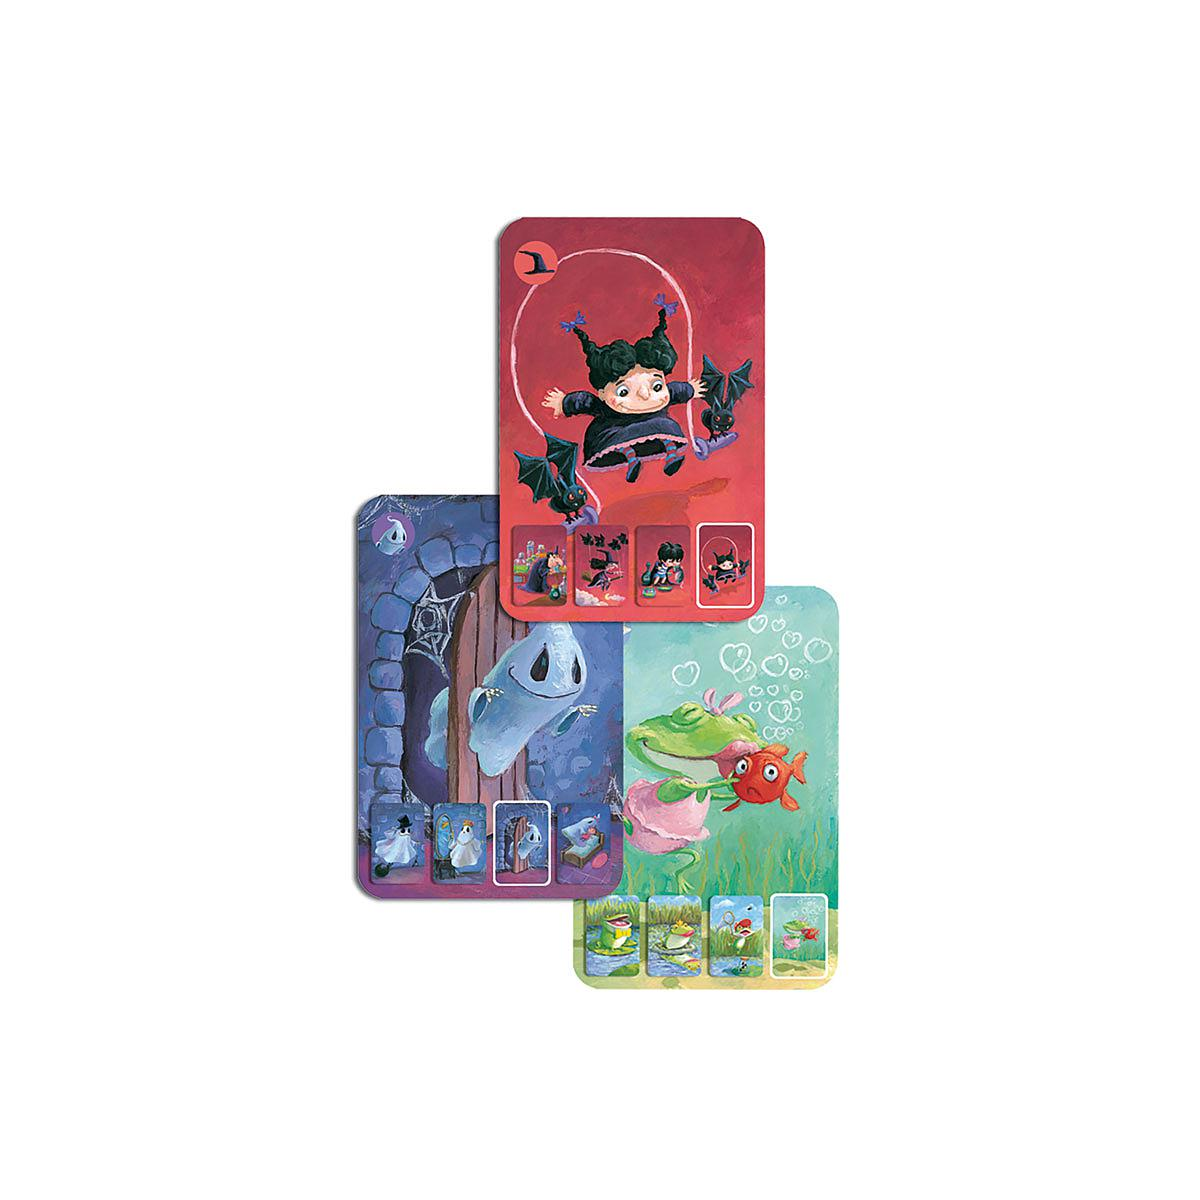 Jeu de cartes MINI FAMILY Djeco